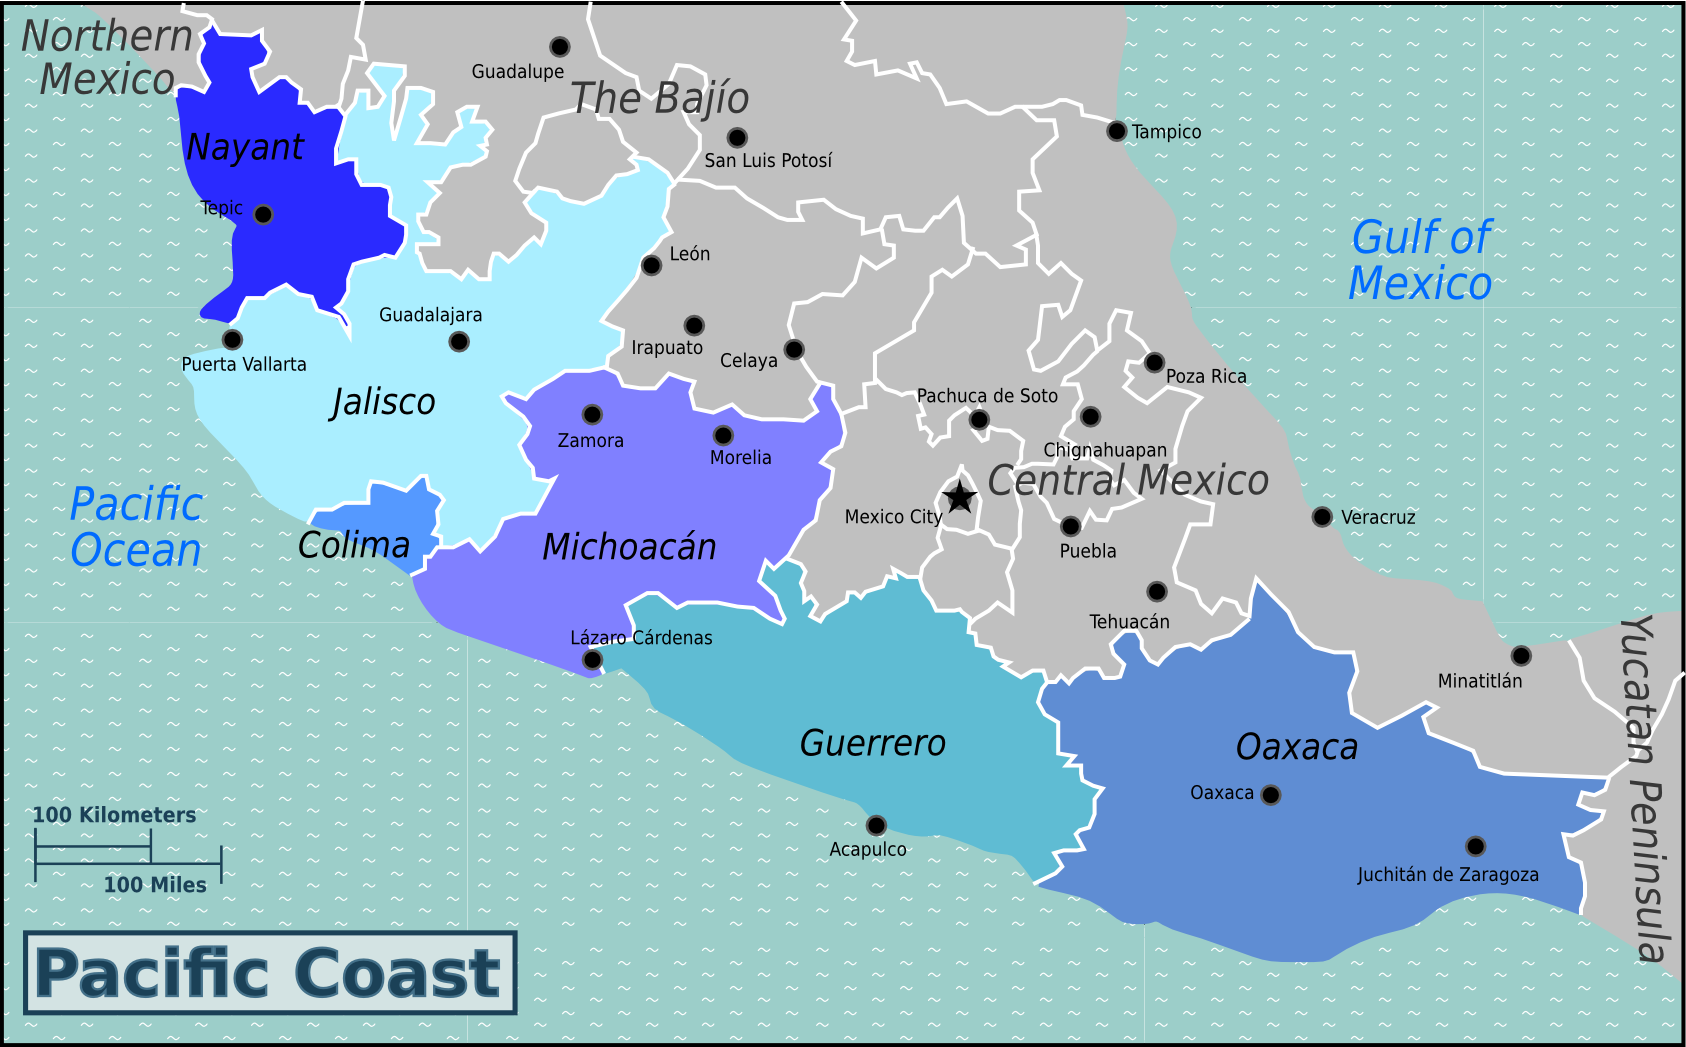 FilePacific Coast Mexico WV map PNGpng Wikimedia Commons